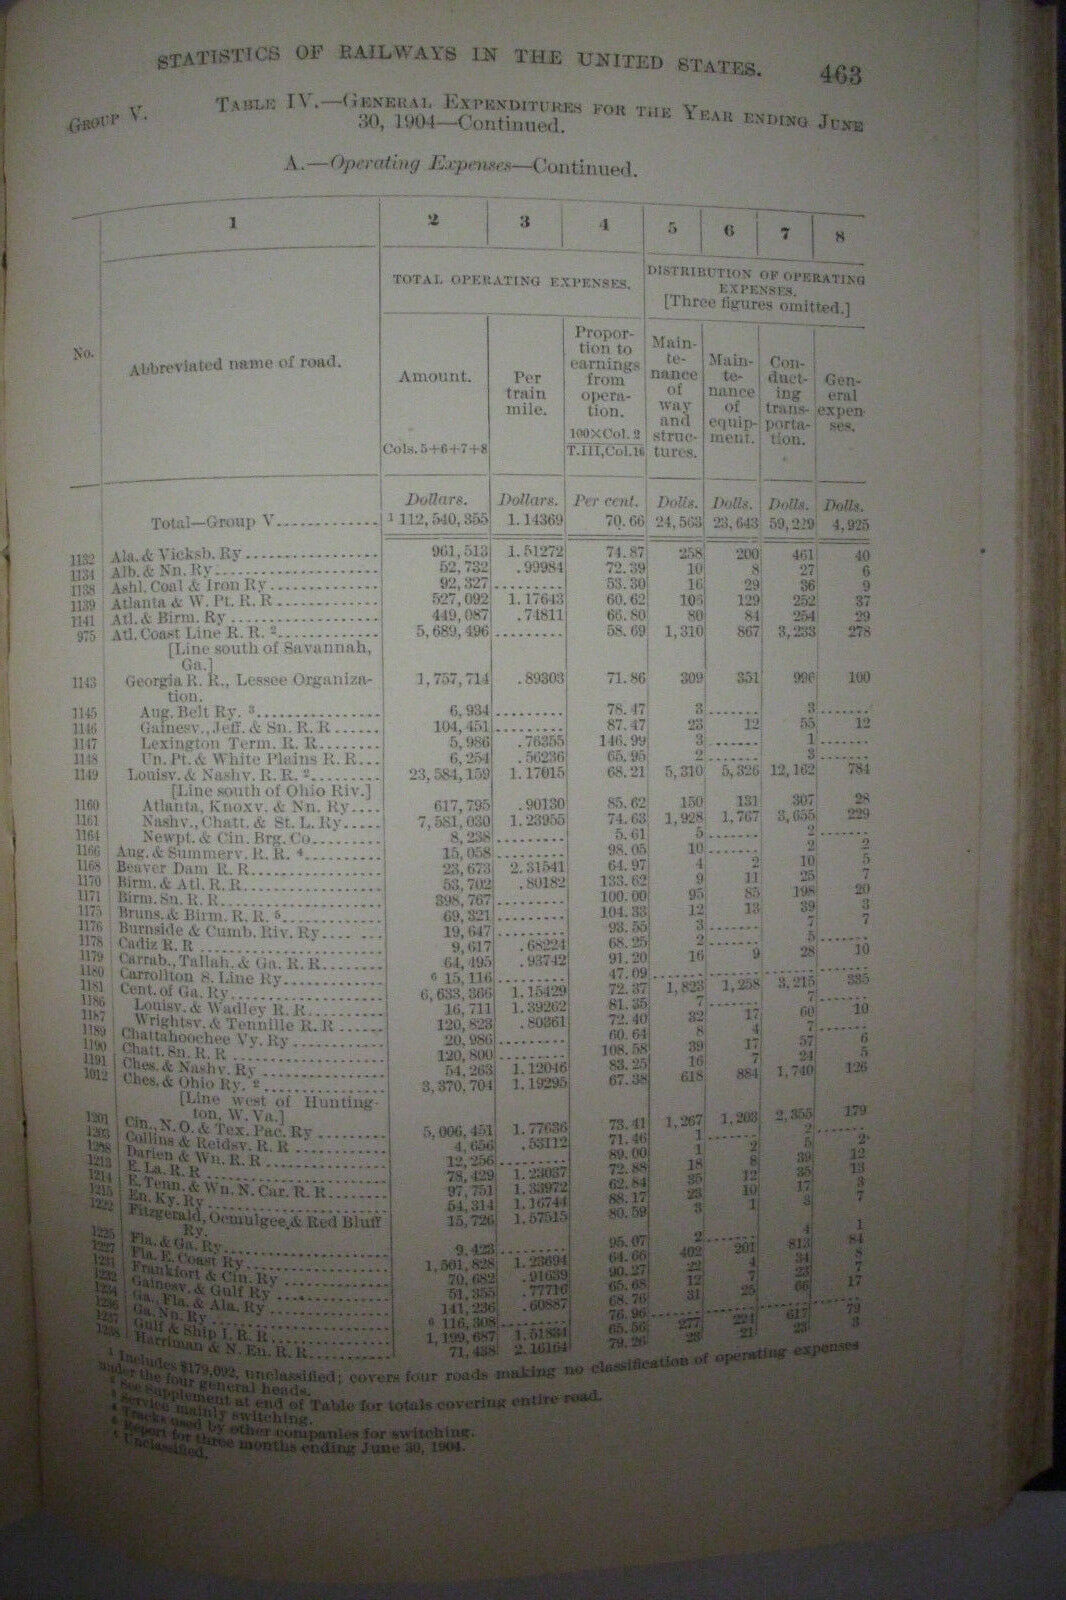 1904 ANNUAL REPORT ON THE RAILWAYS IN THE US RailroadTrainsw